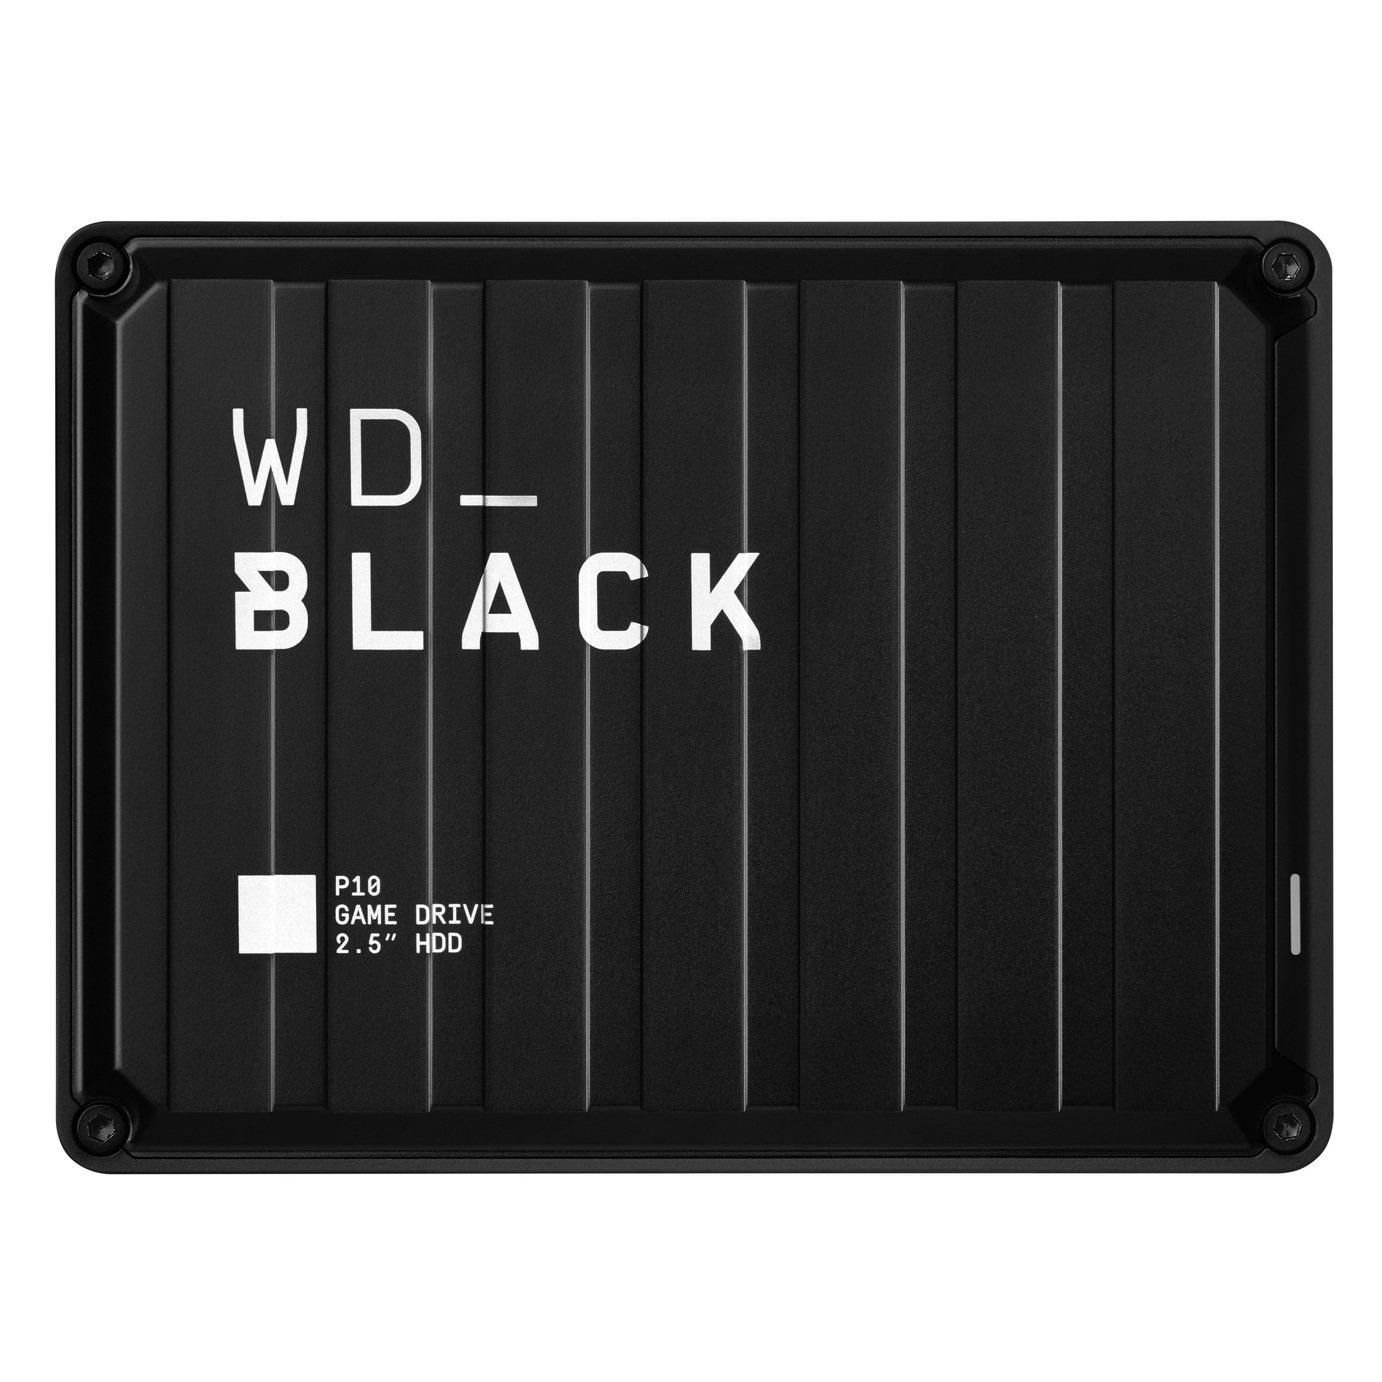 WD Black P10 4TB Portable Hard Drive